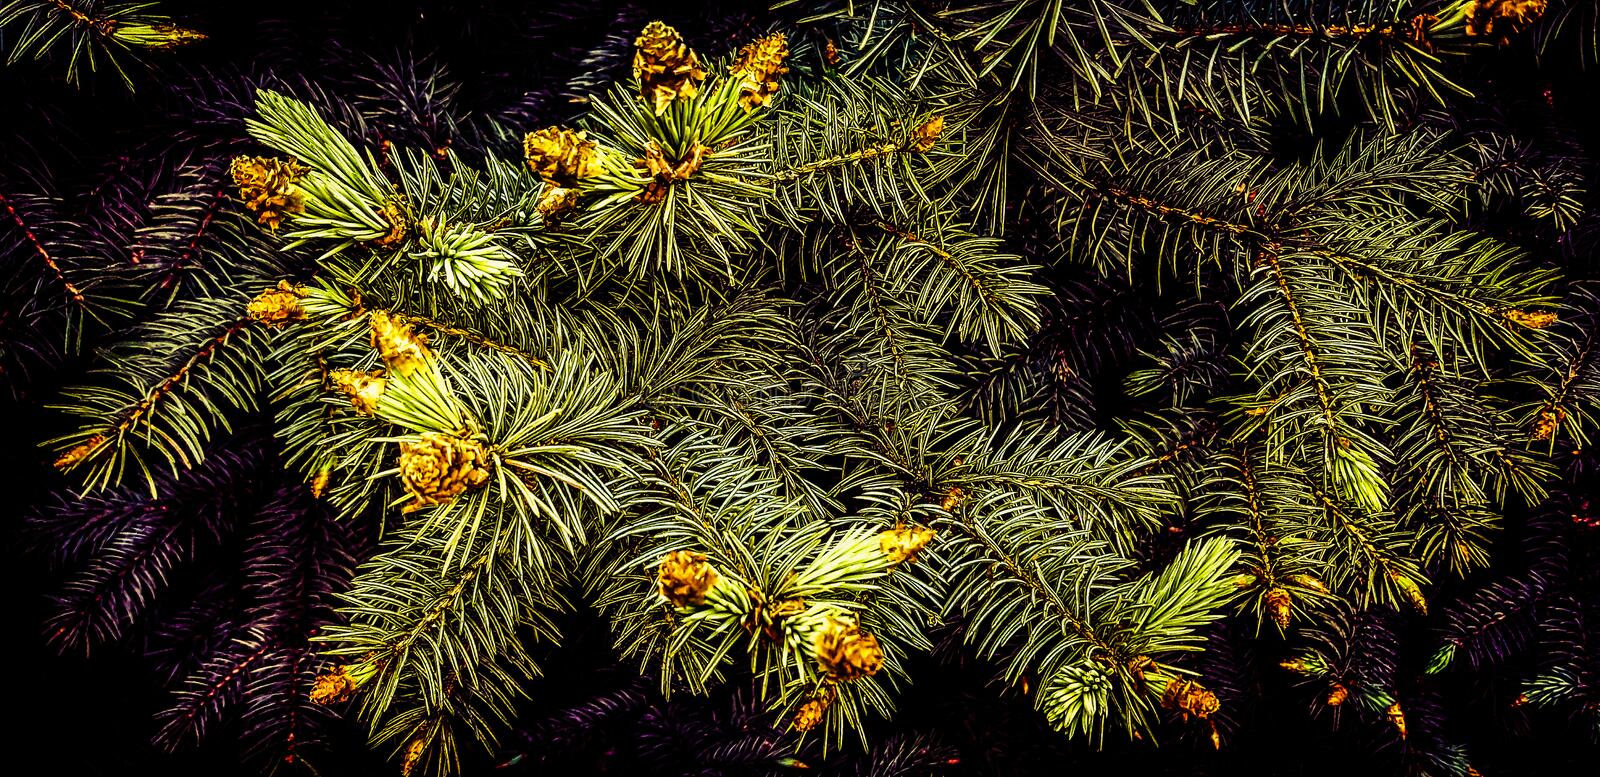 How to bloom spruce? And there is this mystery in the deep forest in late spring. stock photo